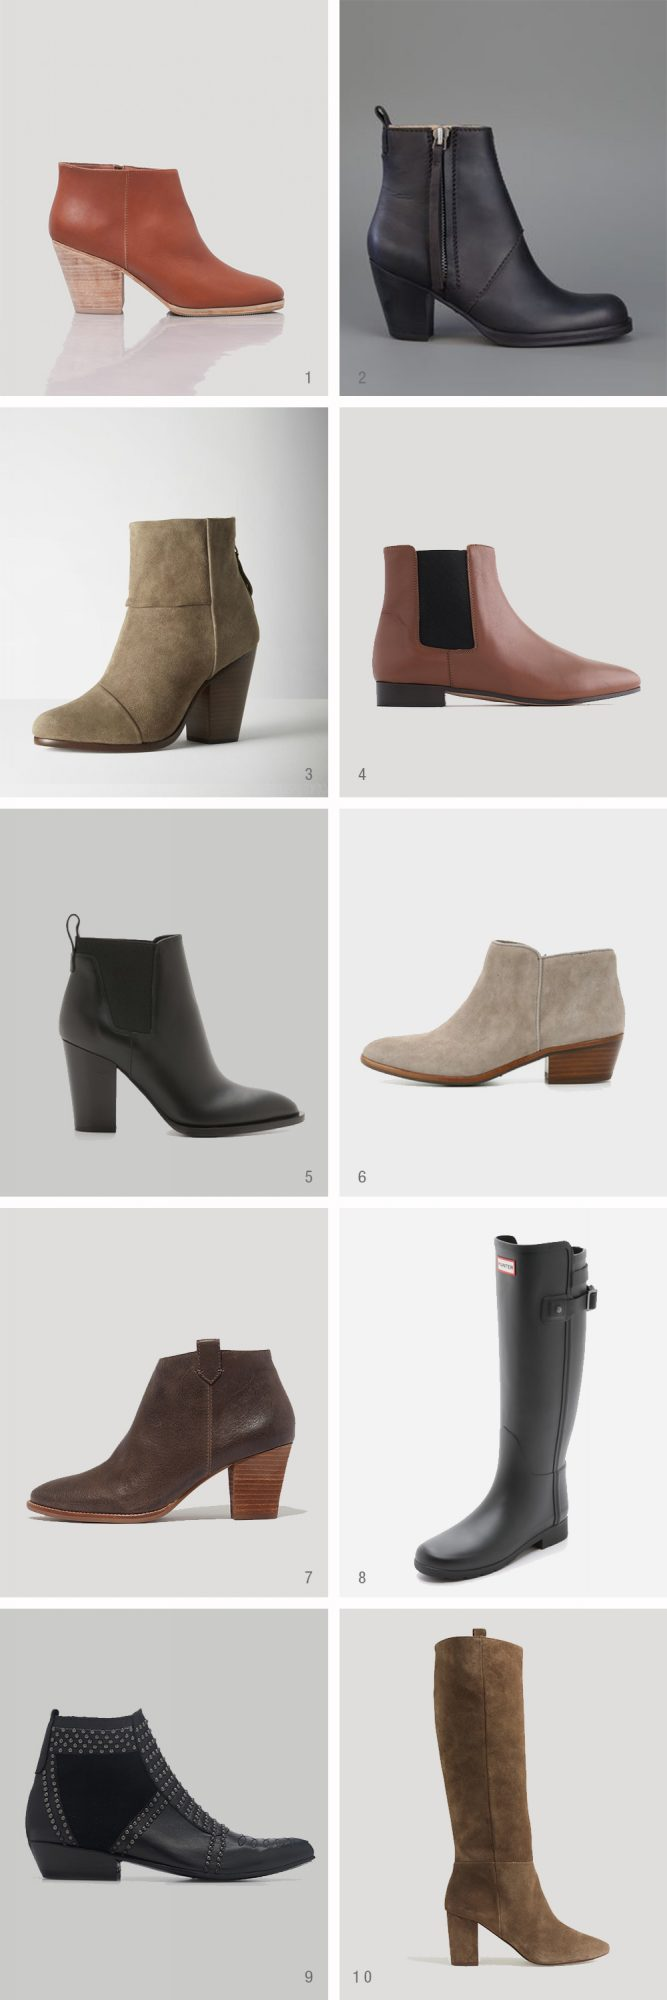 Style Bee - 10 Timeless Fall Boots